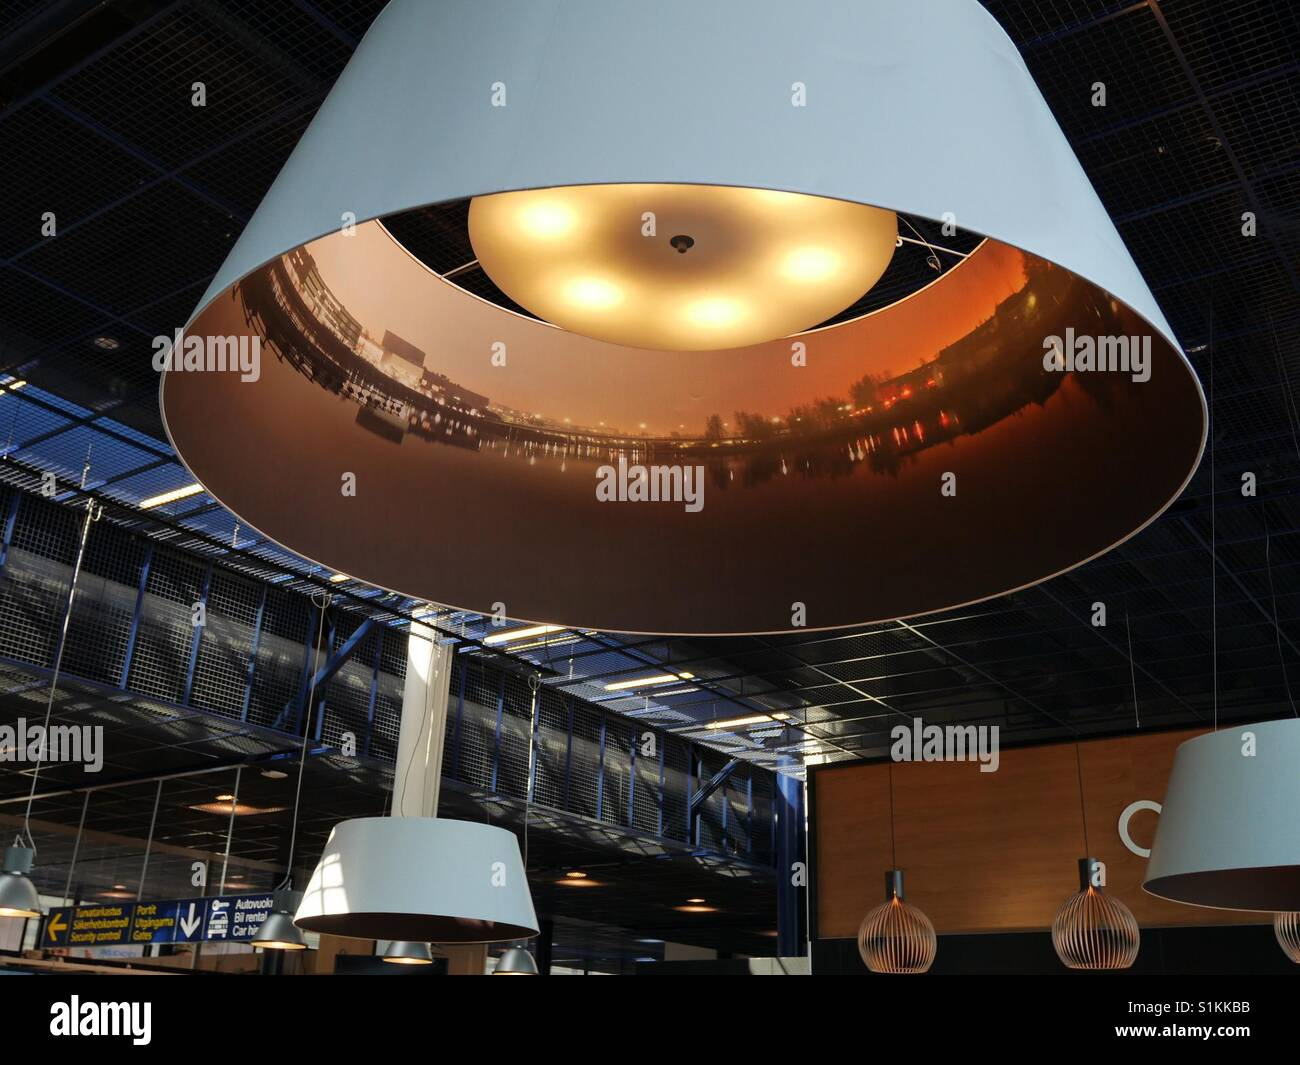 Lampshade at Oulu Finland airport shows panoramic view of Oulu - Stock Image